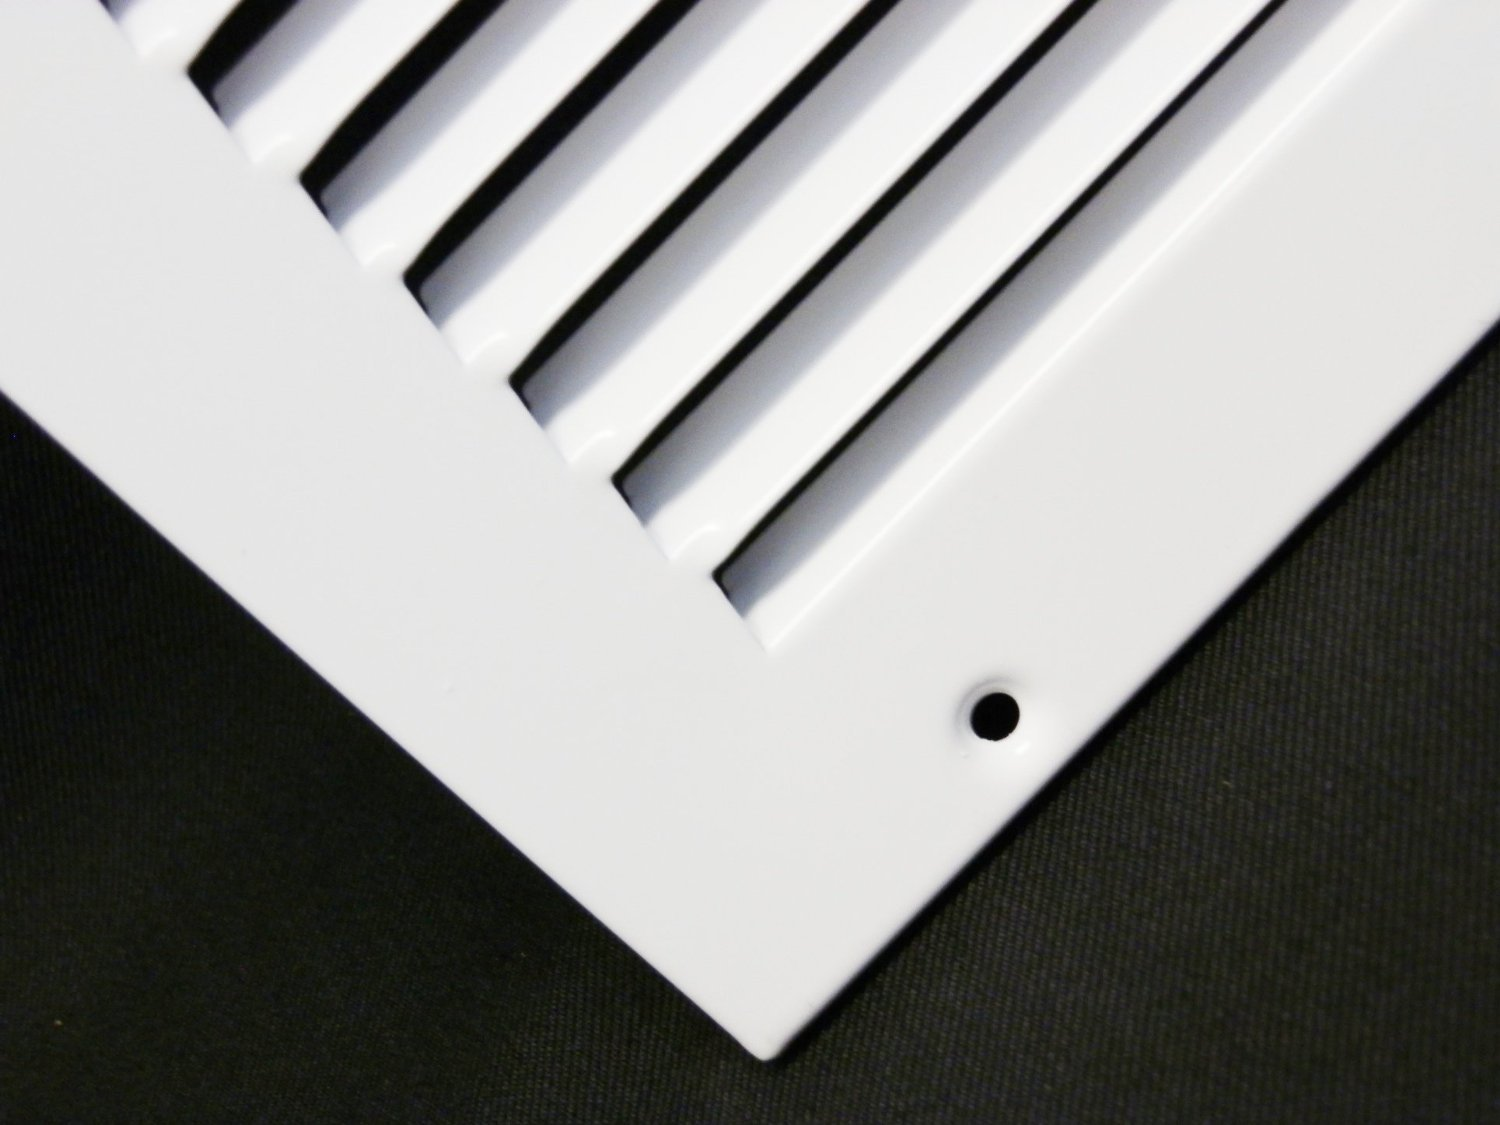 12''w X 18''h Steel Return Air Grilles - Sidewall and Cieling - HVAC DUCT COVER - White [Outer Dimensions: 13.75''w X 19.75''h] by HVAC Premium (Image #3)